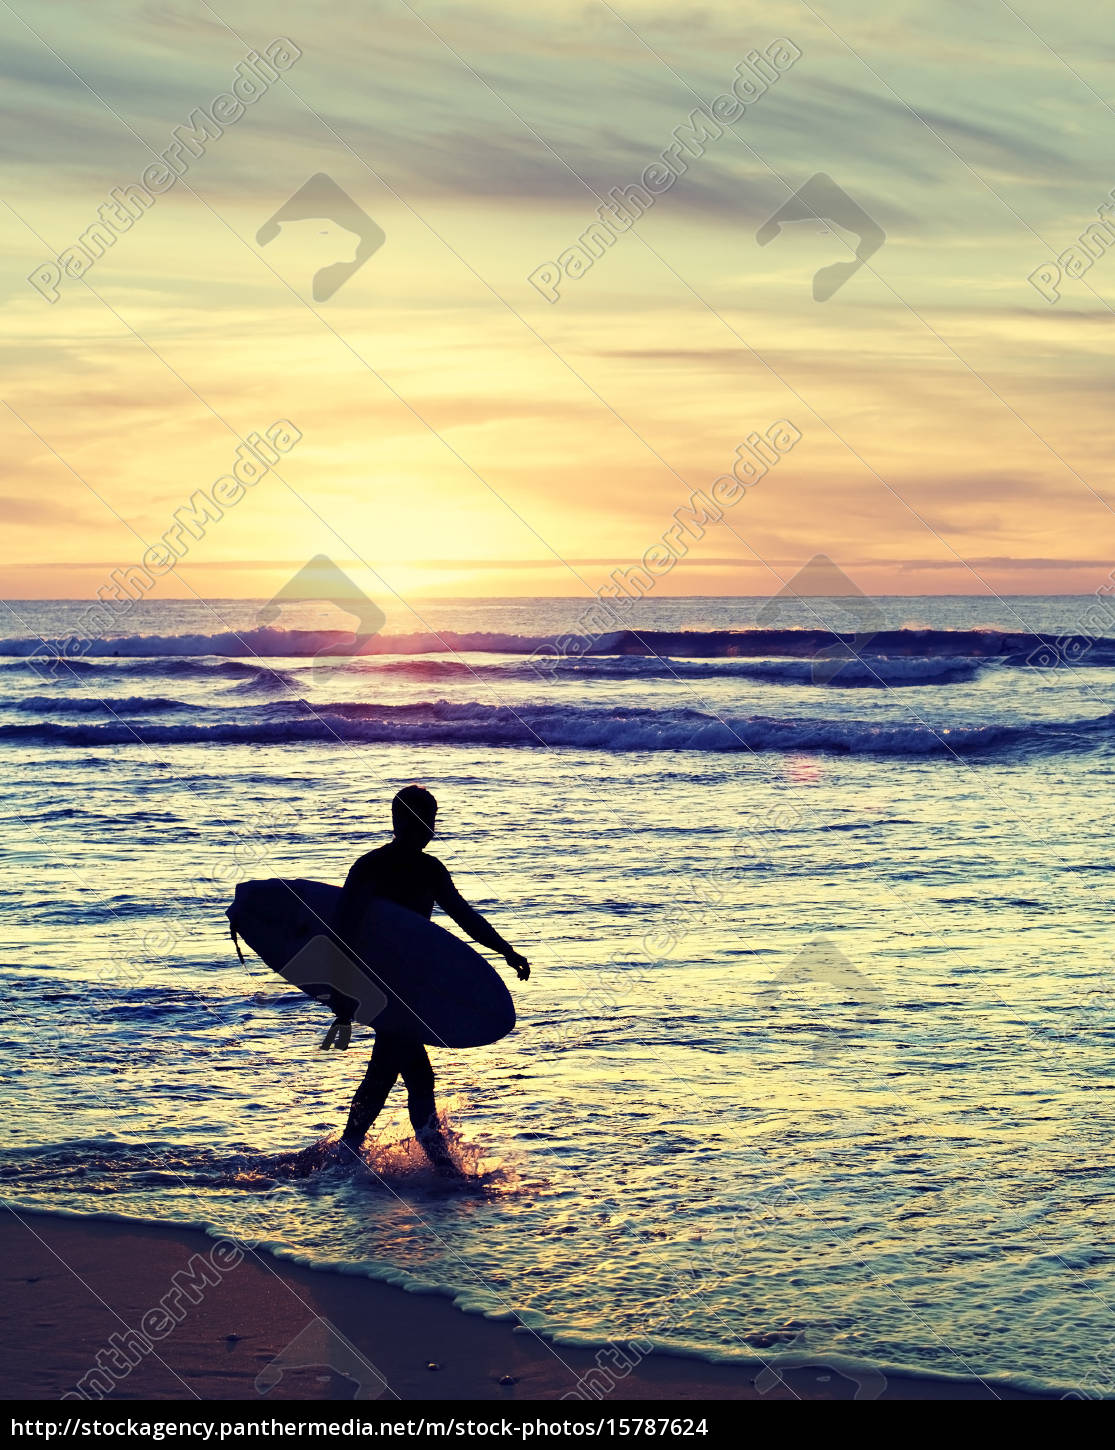 old, styled, surfer - 15787624